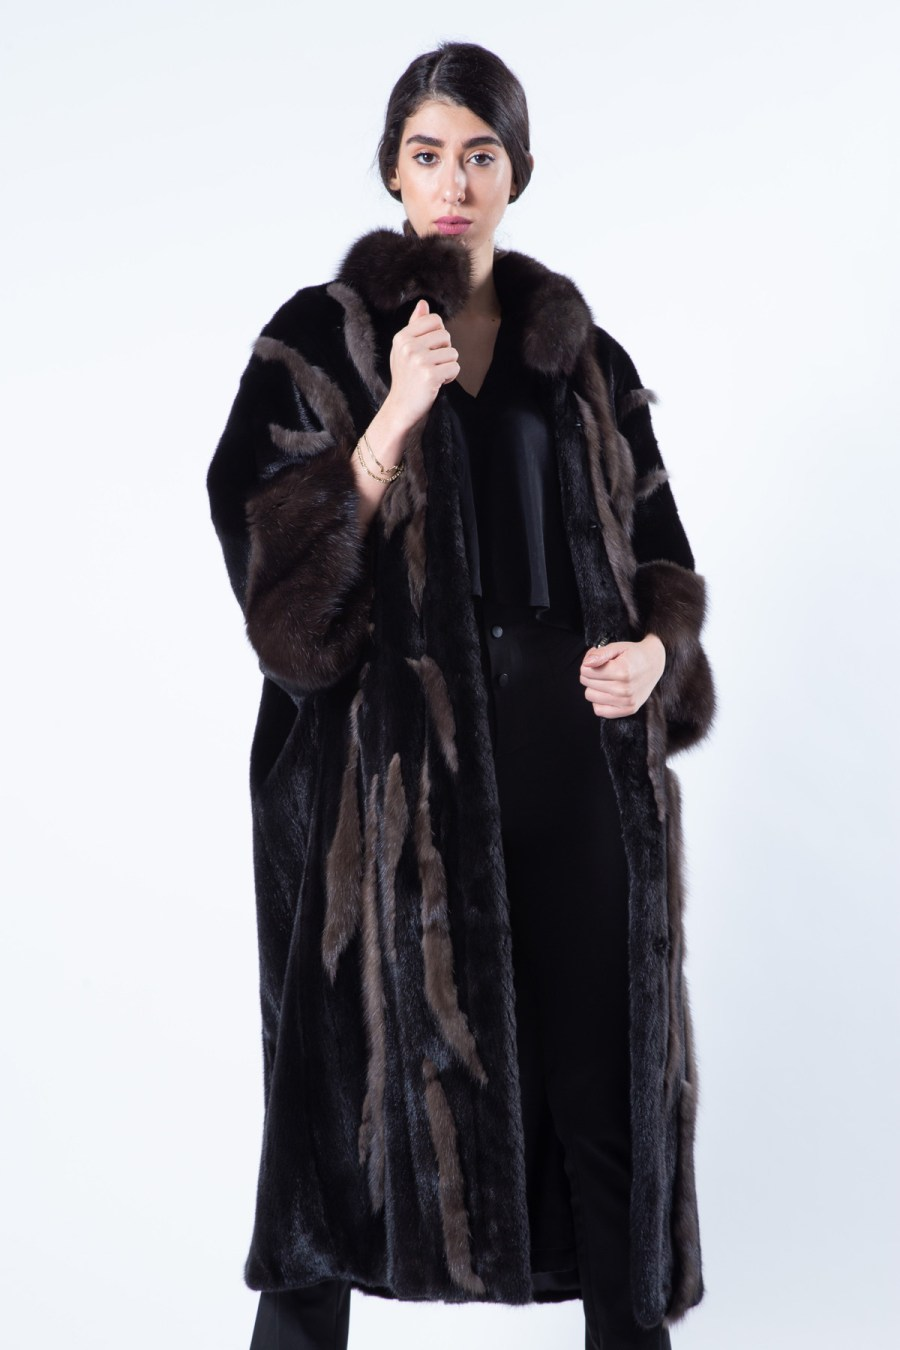 Blackglama Mink Coat with Sable Cuffs | Sarigianni Furs